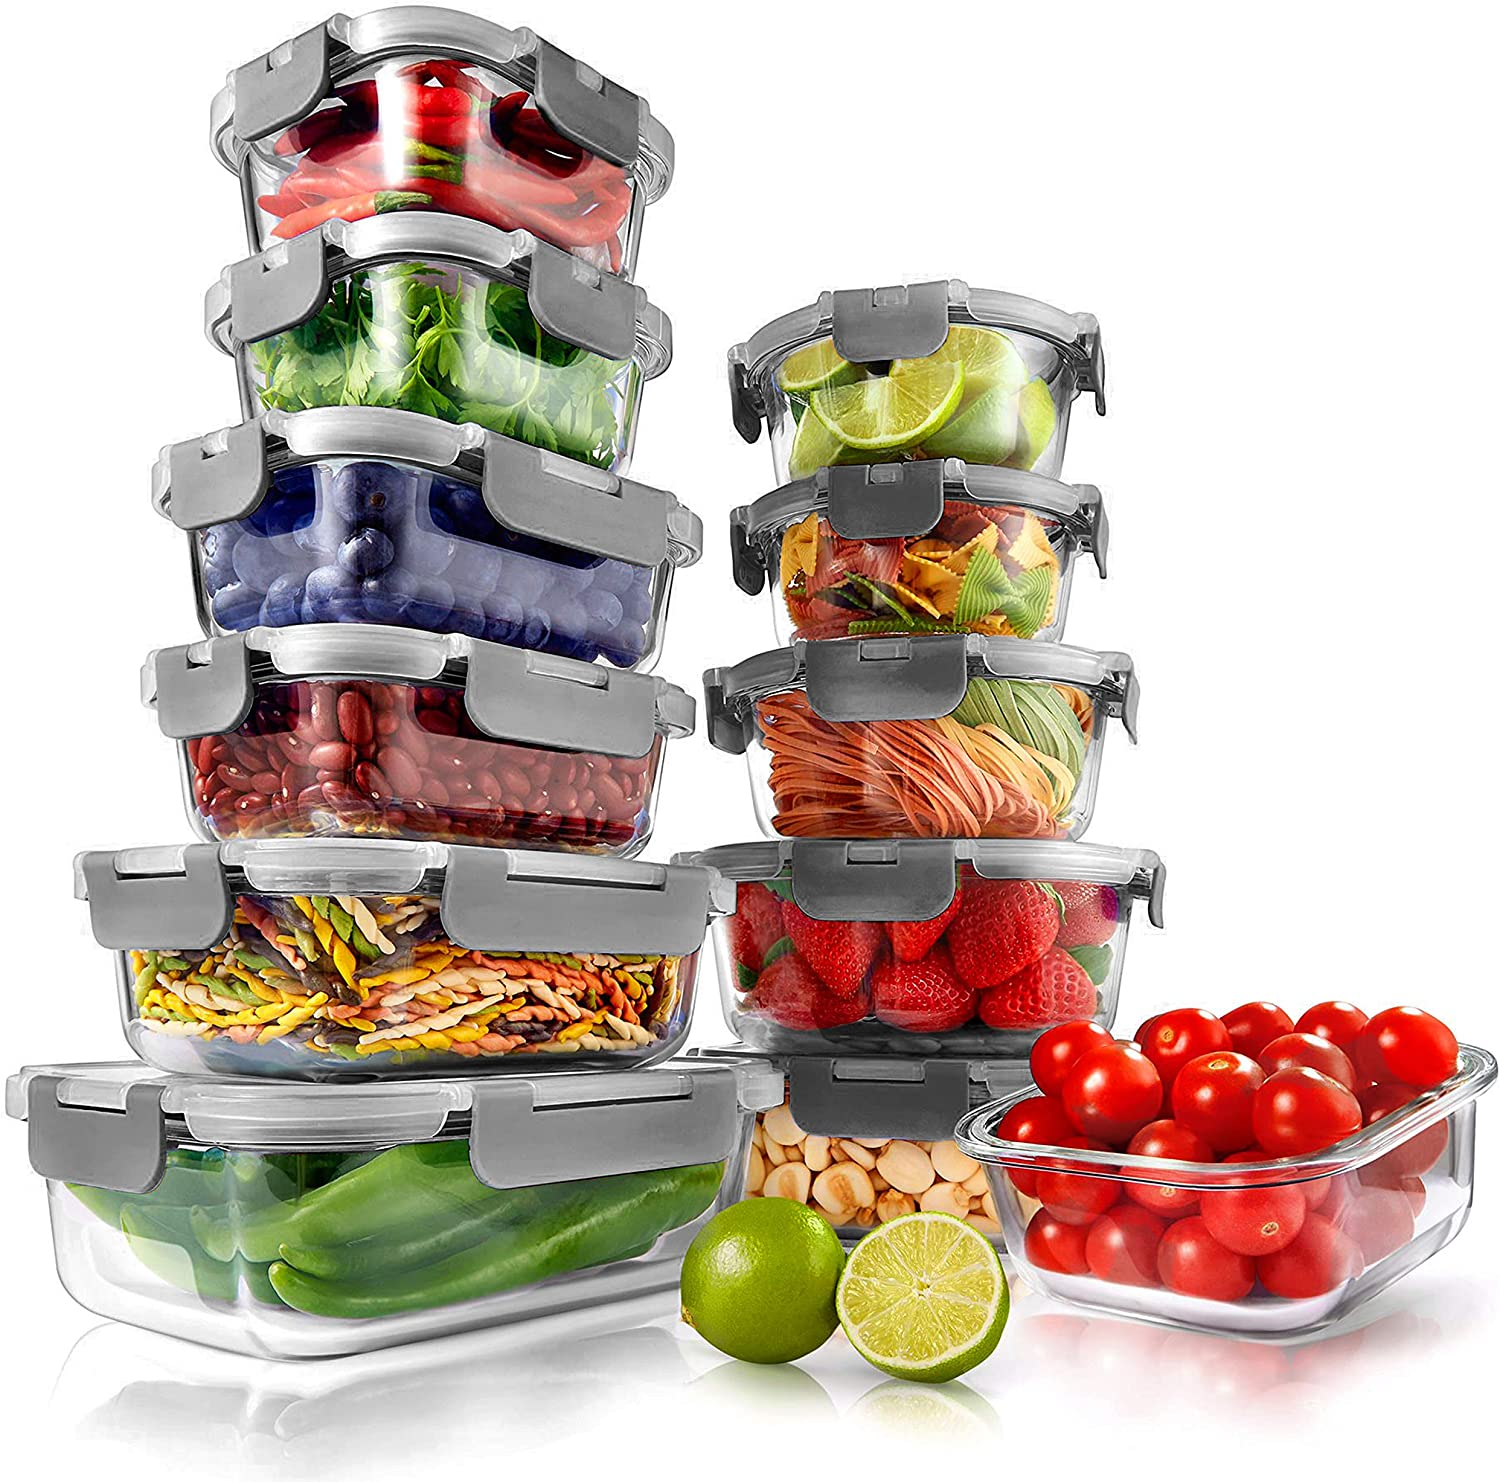 Superior Glass Food Storage Containers - 24-Piece Stackable Glass Meal-prep Containers w/ Newly Innovated Hinged BPA-Free 100% Leakproof Locking Lids - Freezer-to-Oven-Safe - NutriChef NCGLGY (Gray)